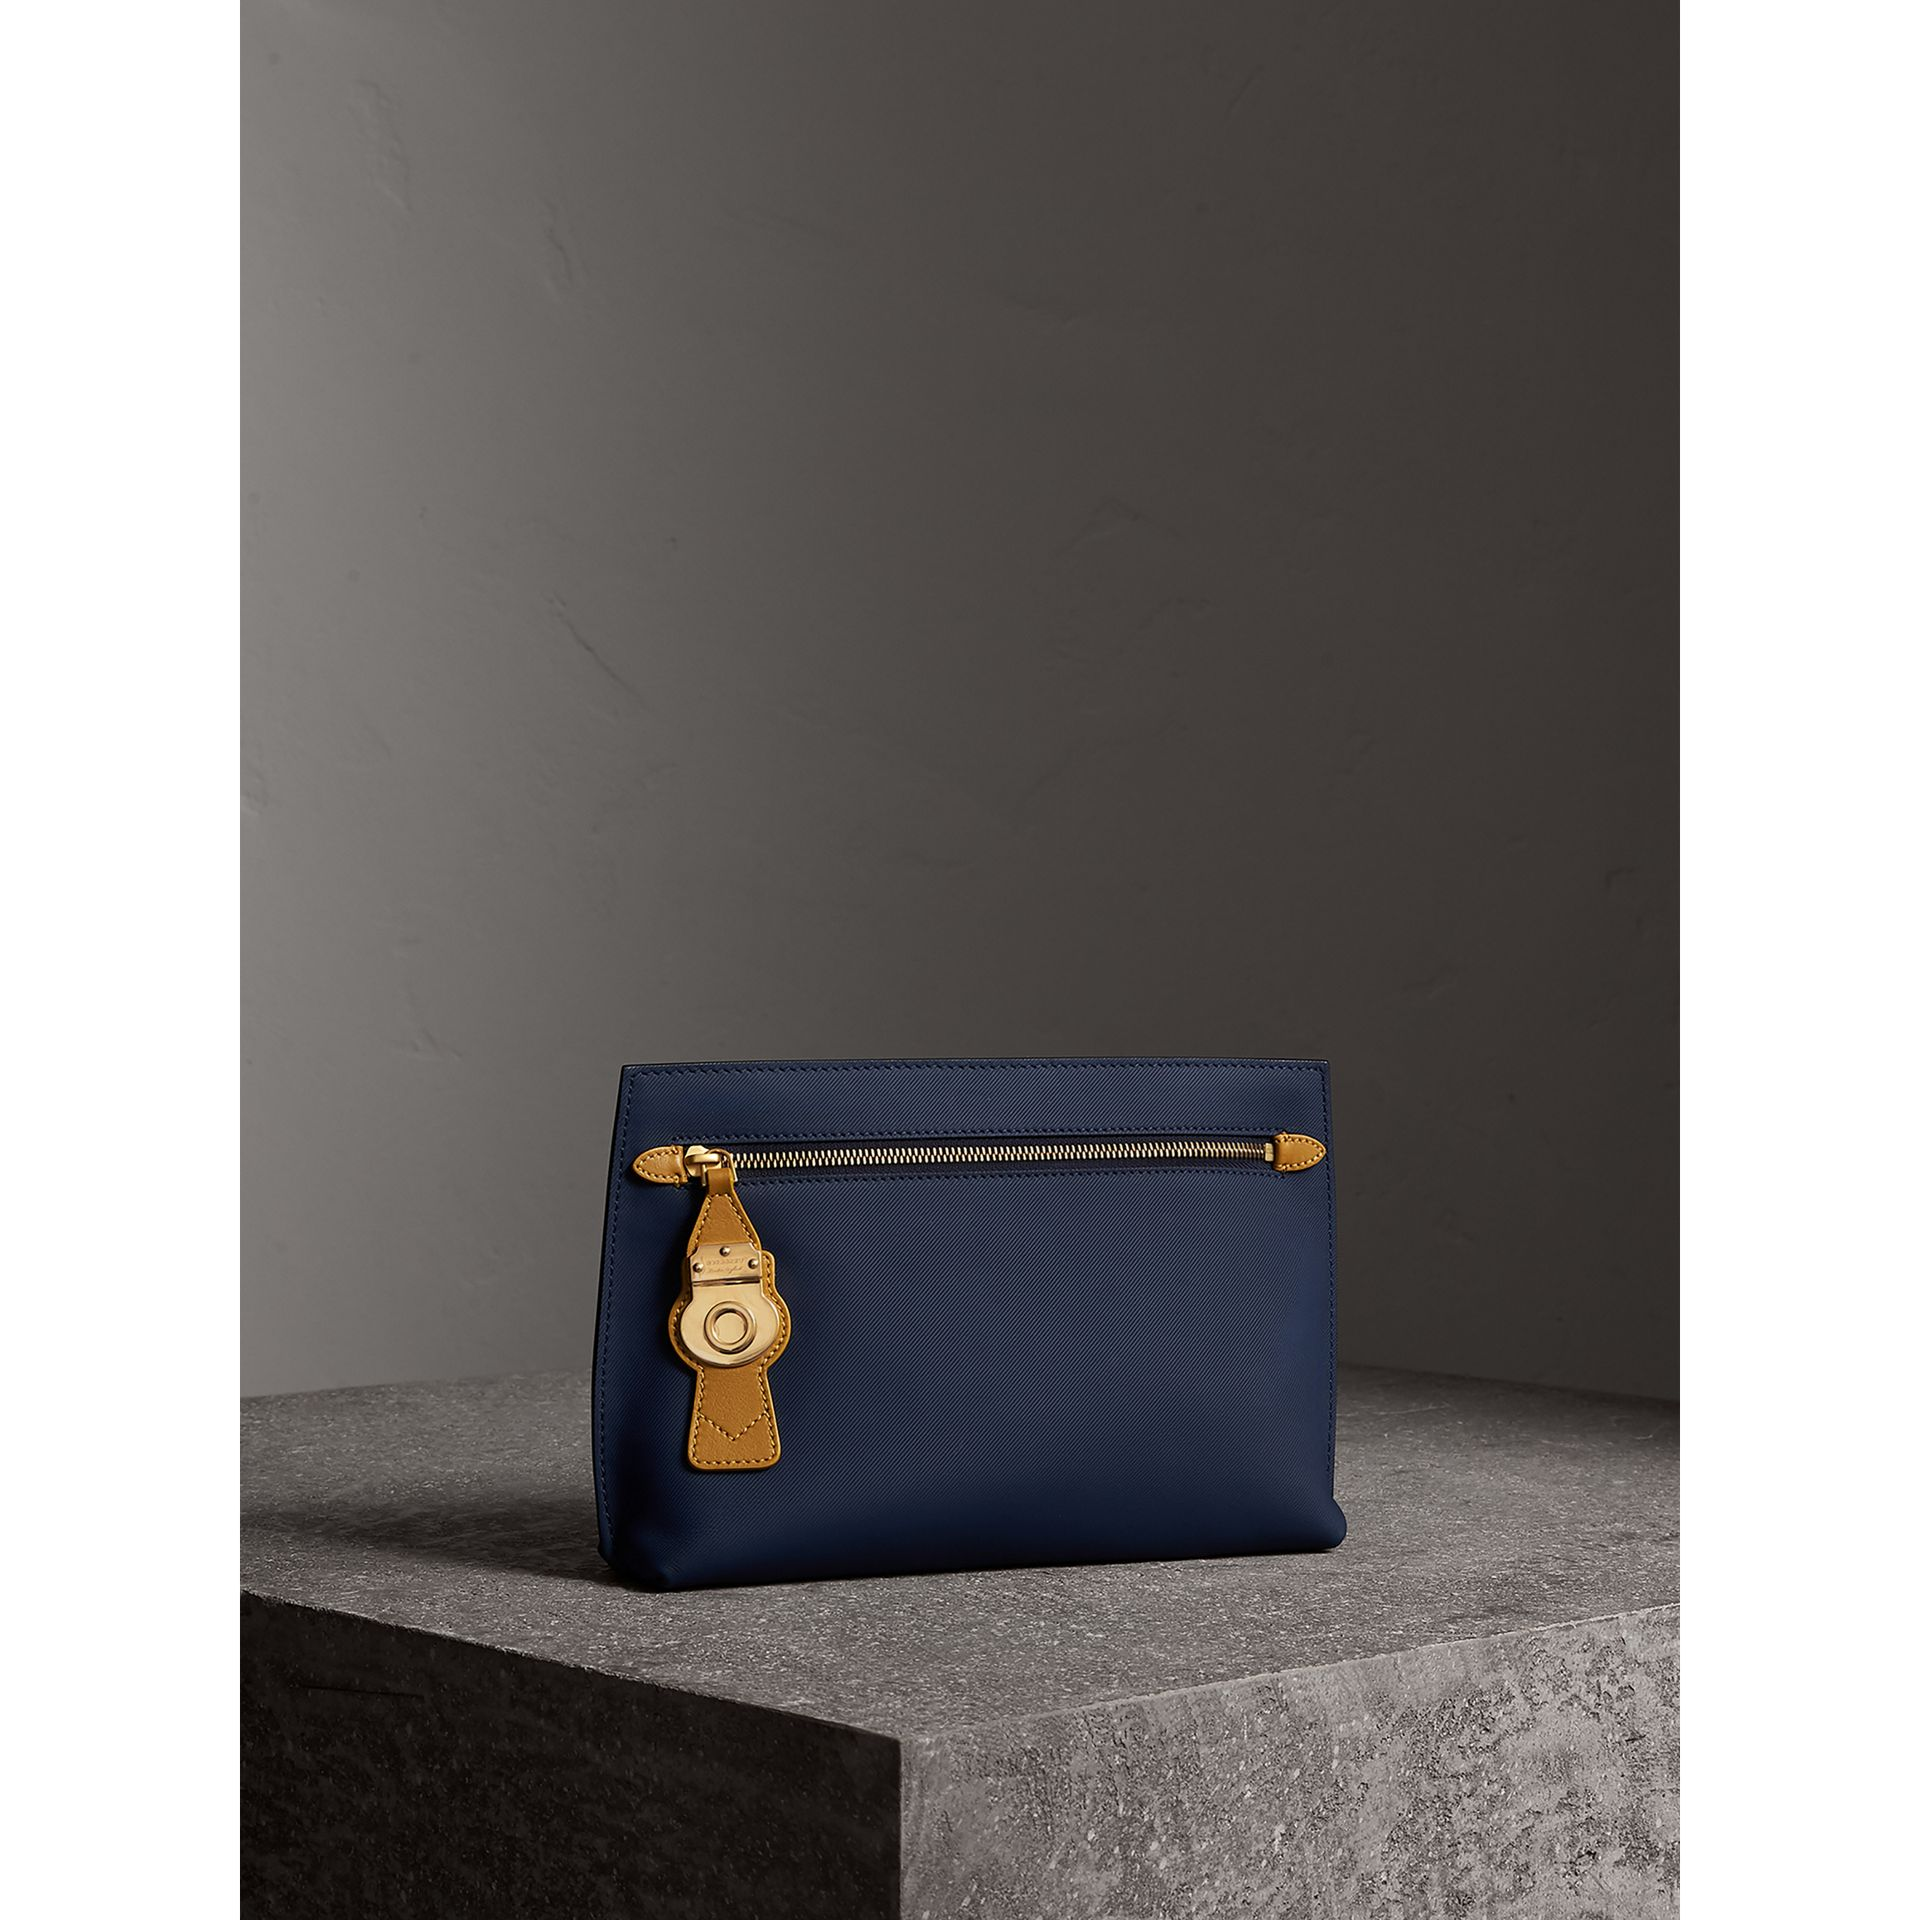 Two-tone Trench Leather Wristlet Pouch in Ink Blue/ochre Yellow - Women | Burberry Australia - gallery image 6